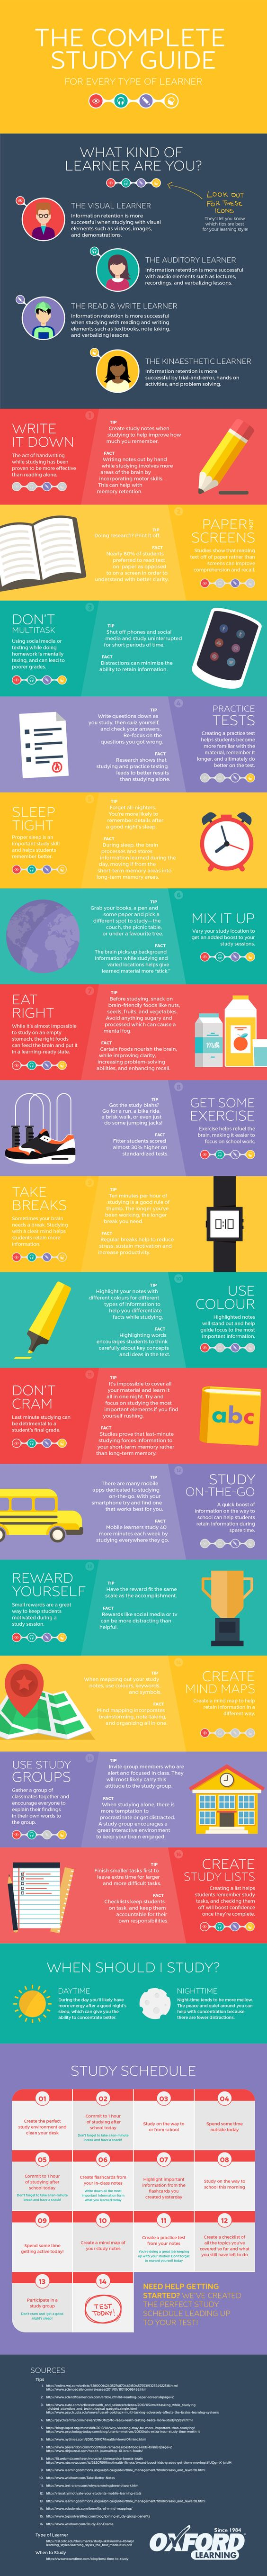 The Complete Study Guide - For Every Type Of Learner #infographic